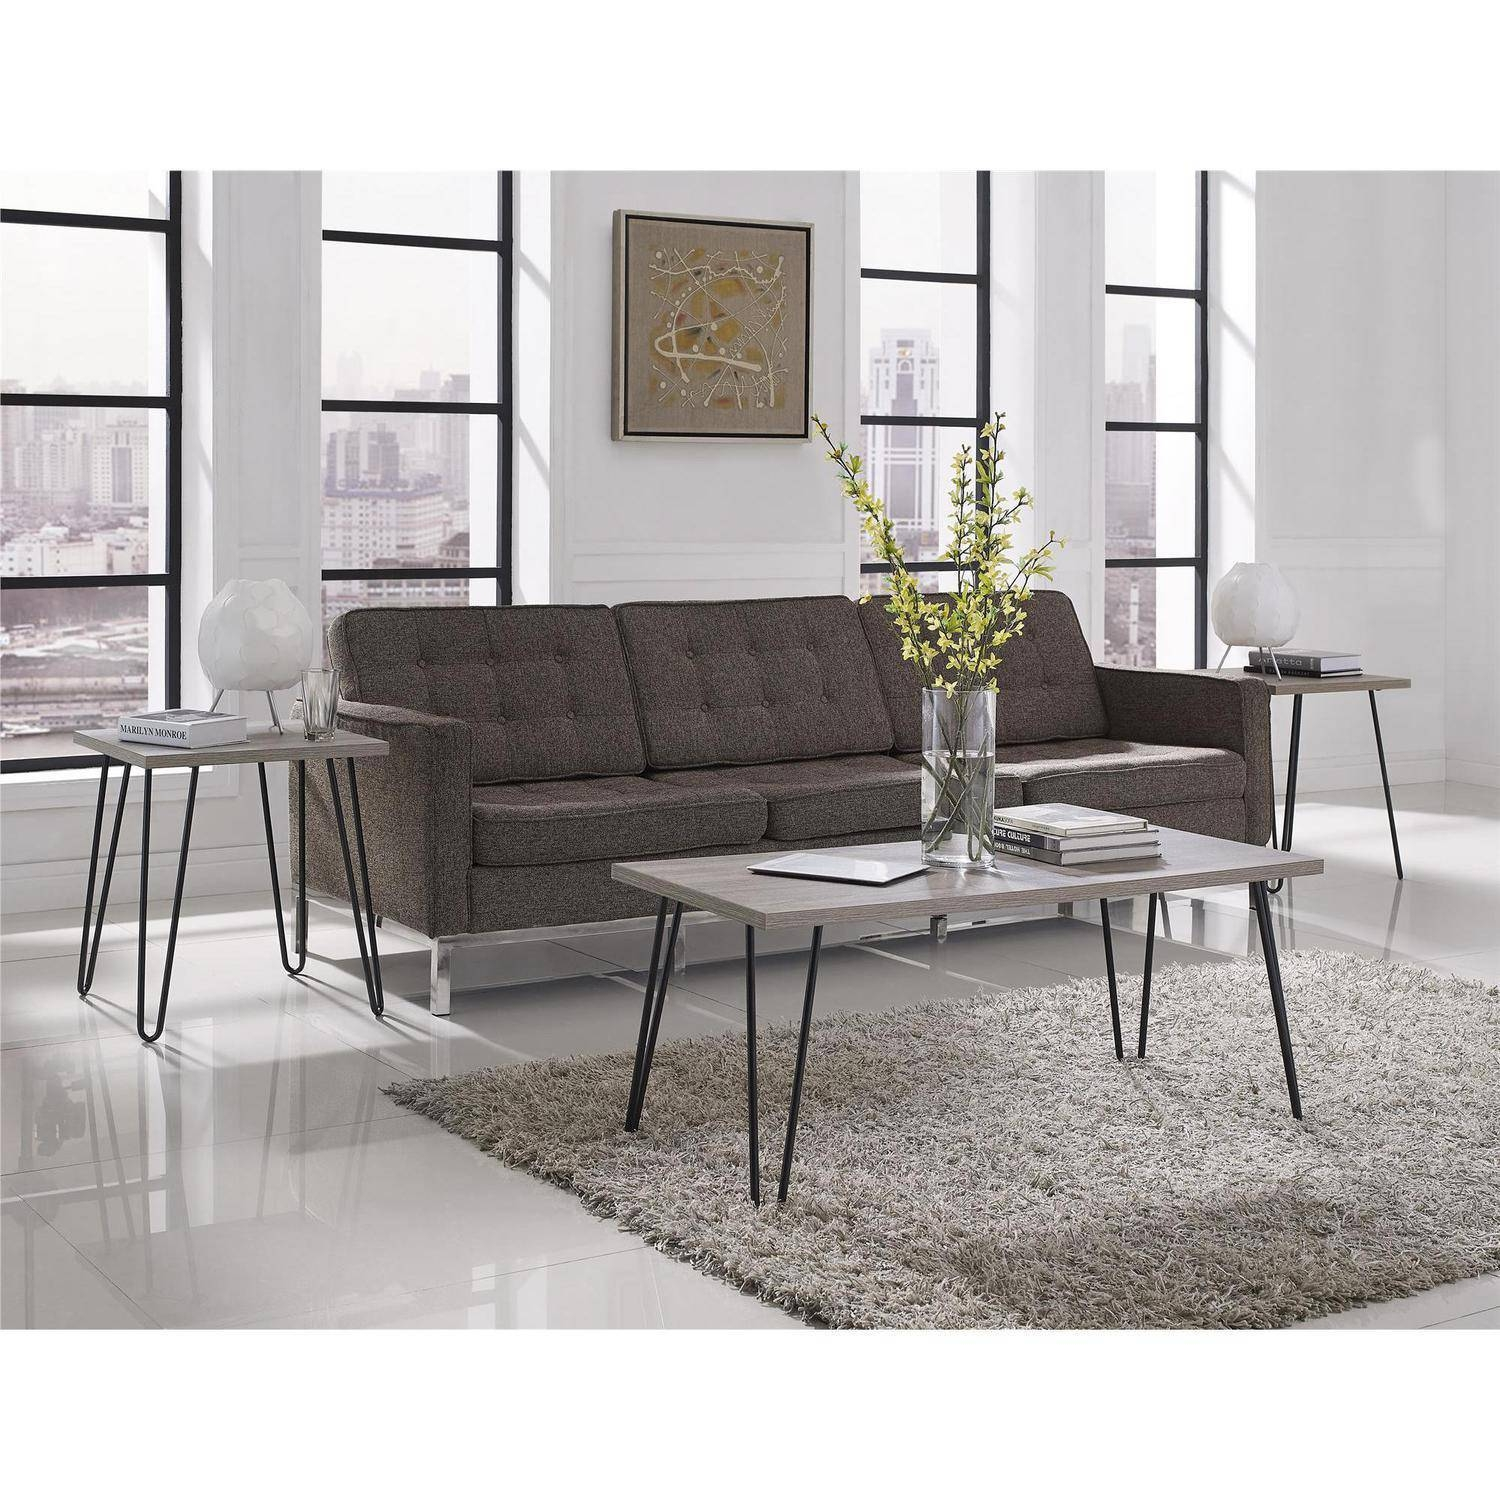 Ameriwood Home Owen Retro Coffee Table, Distressed Gray Oak throughout Grey Coffee Table Sets (Image 1 of 30)